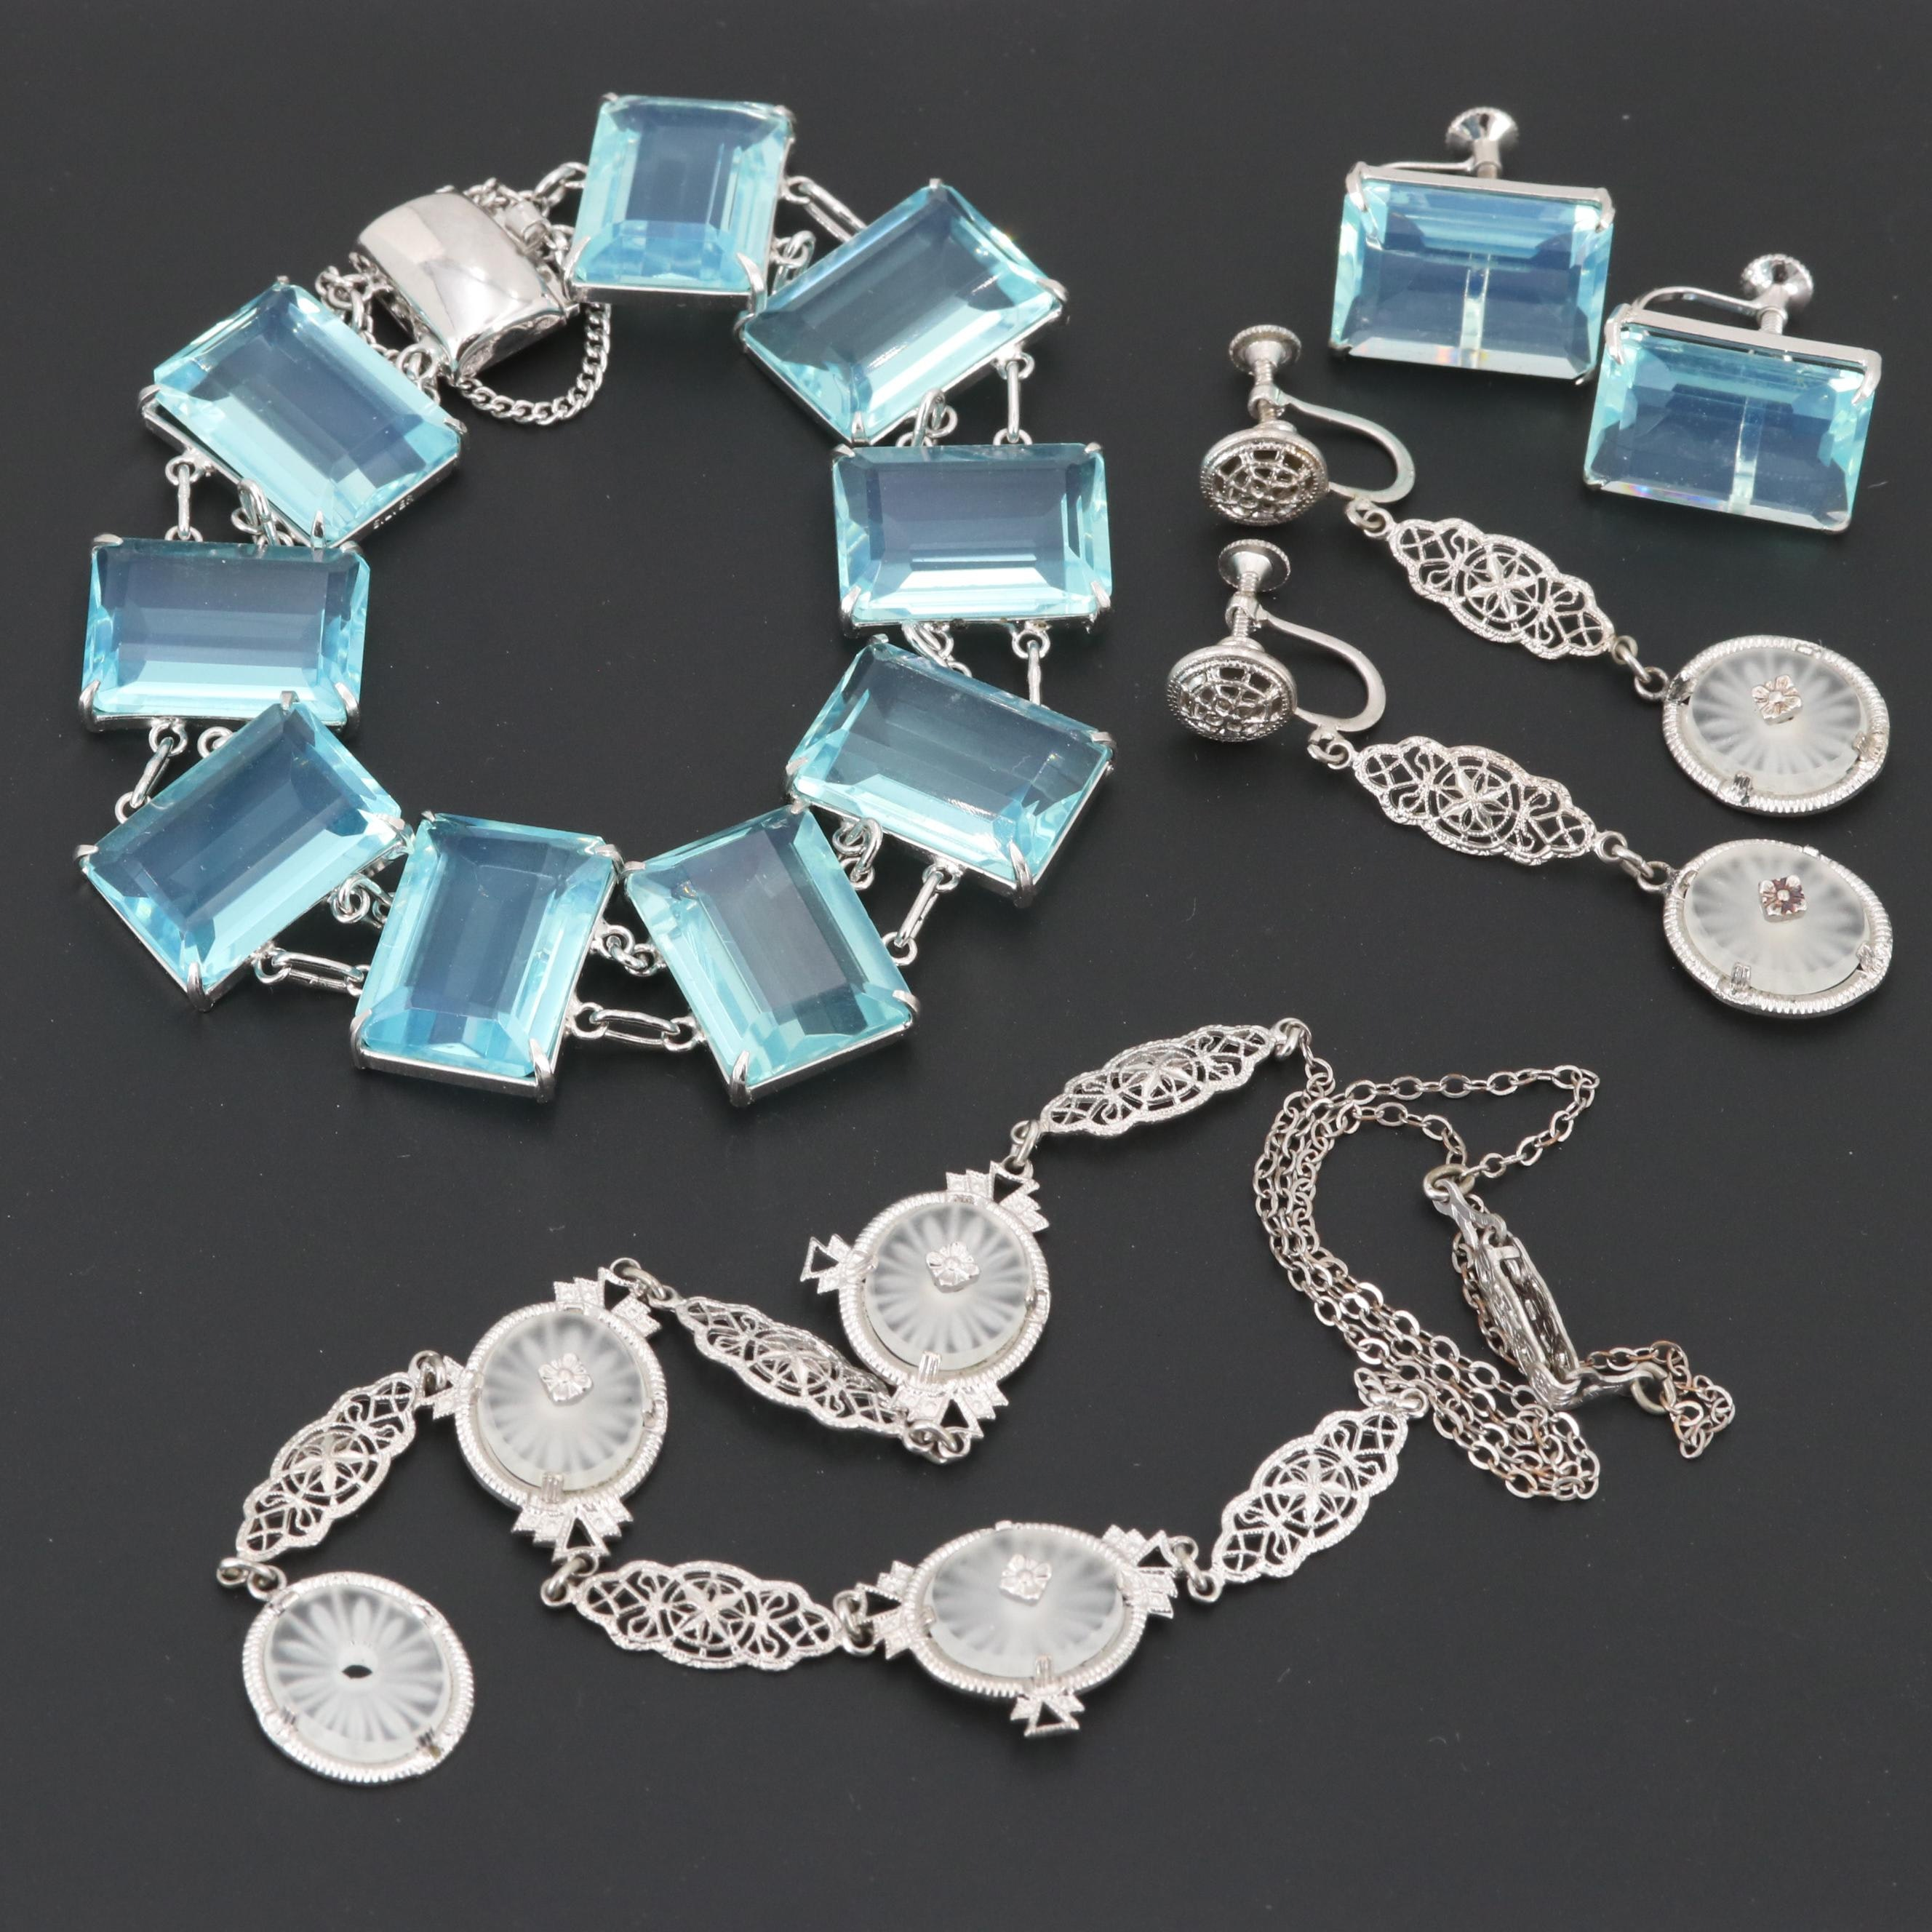 Vintage Glass and Camphor Glass Earrings, Bracelet and Necklace